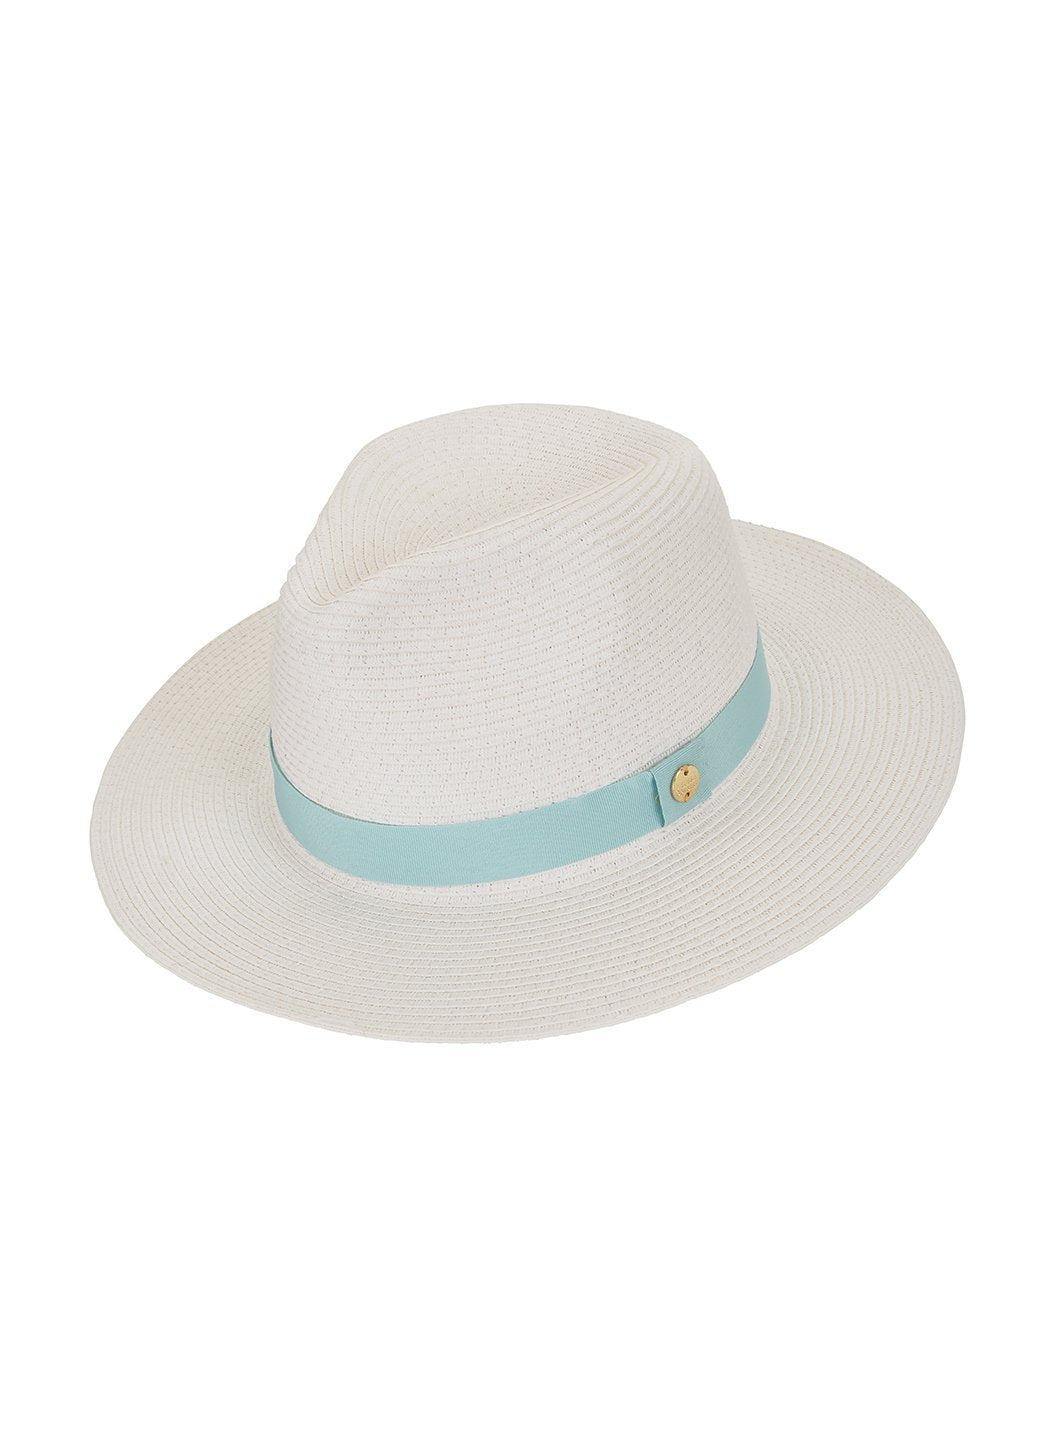 fedora hat white mint 2019